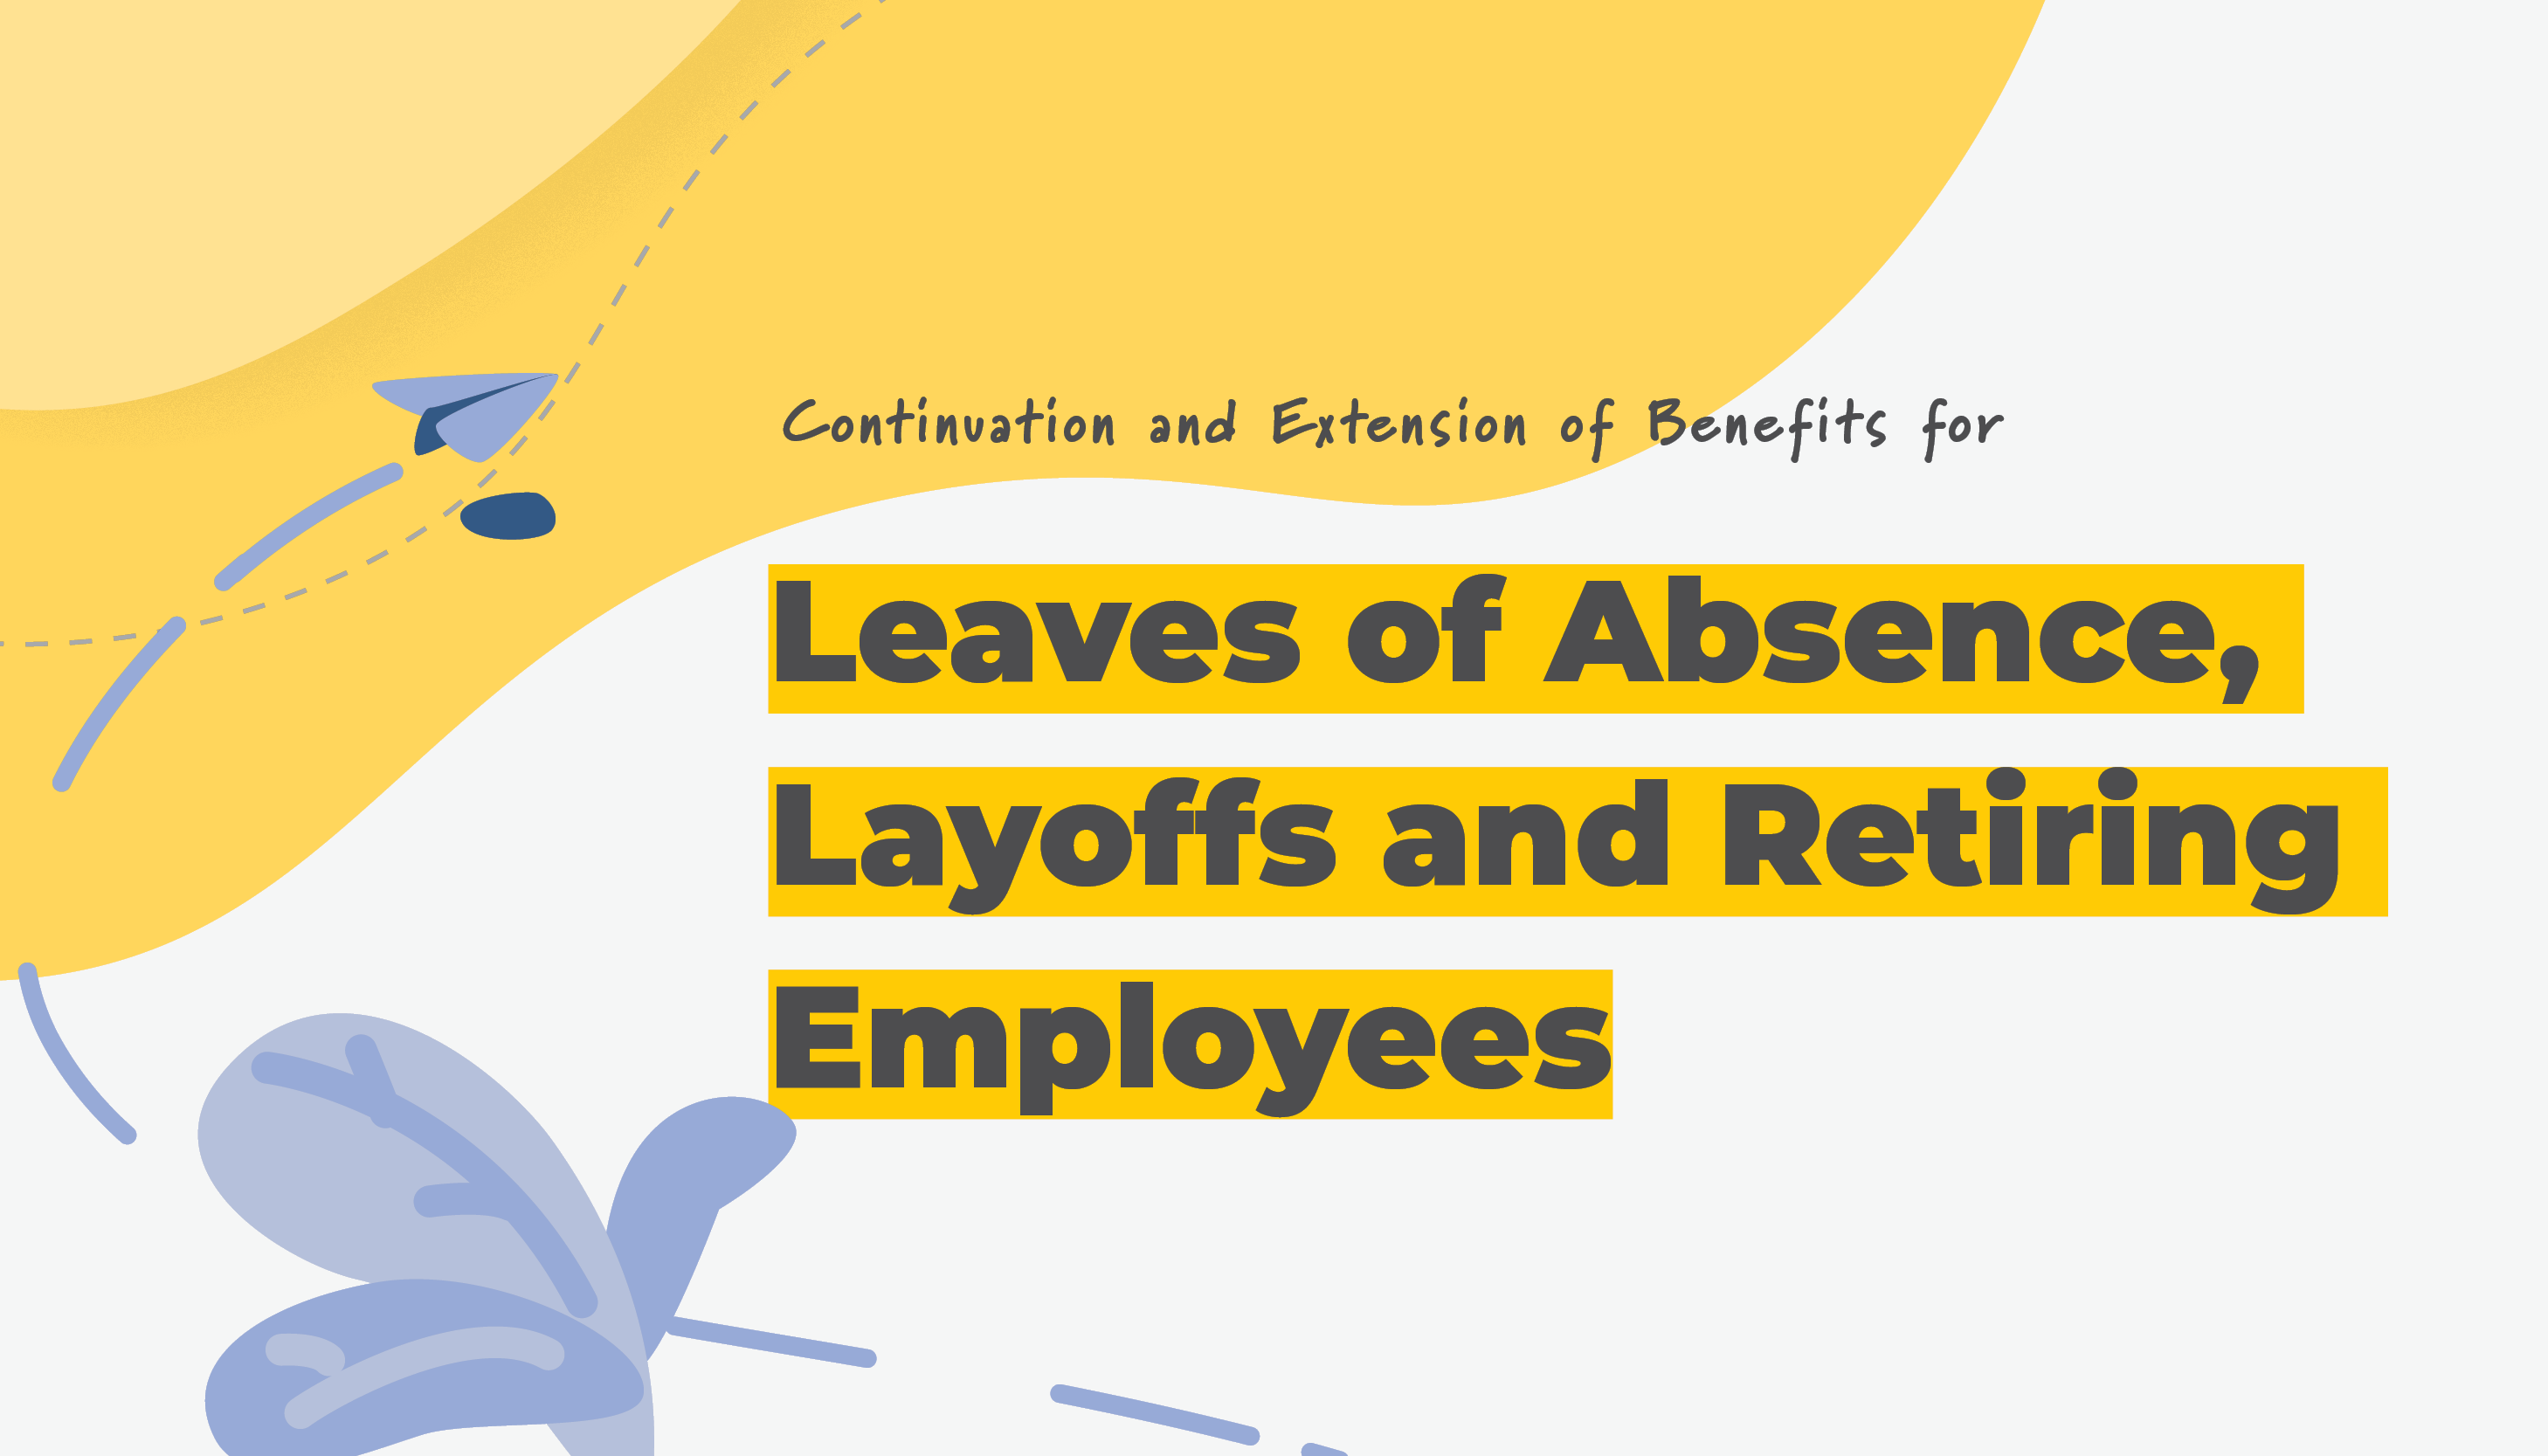 Continuation of Benefits for Leaves of Absence, Layoffs, and Retiring Employees | Benefits by Design